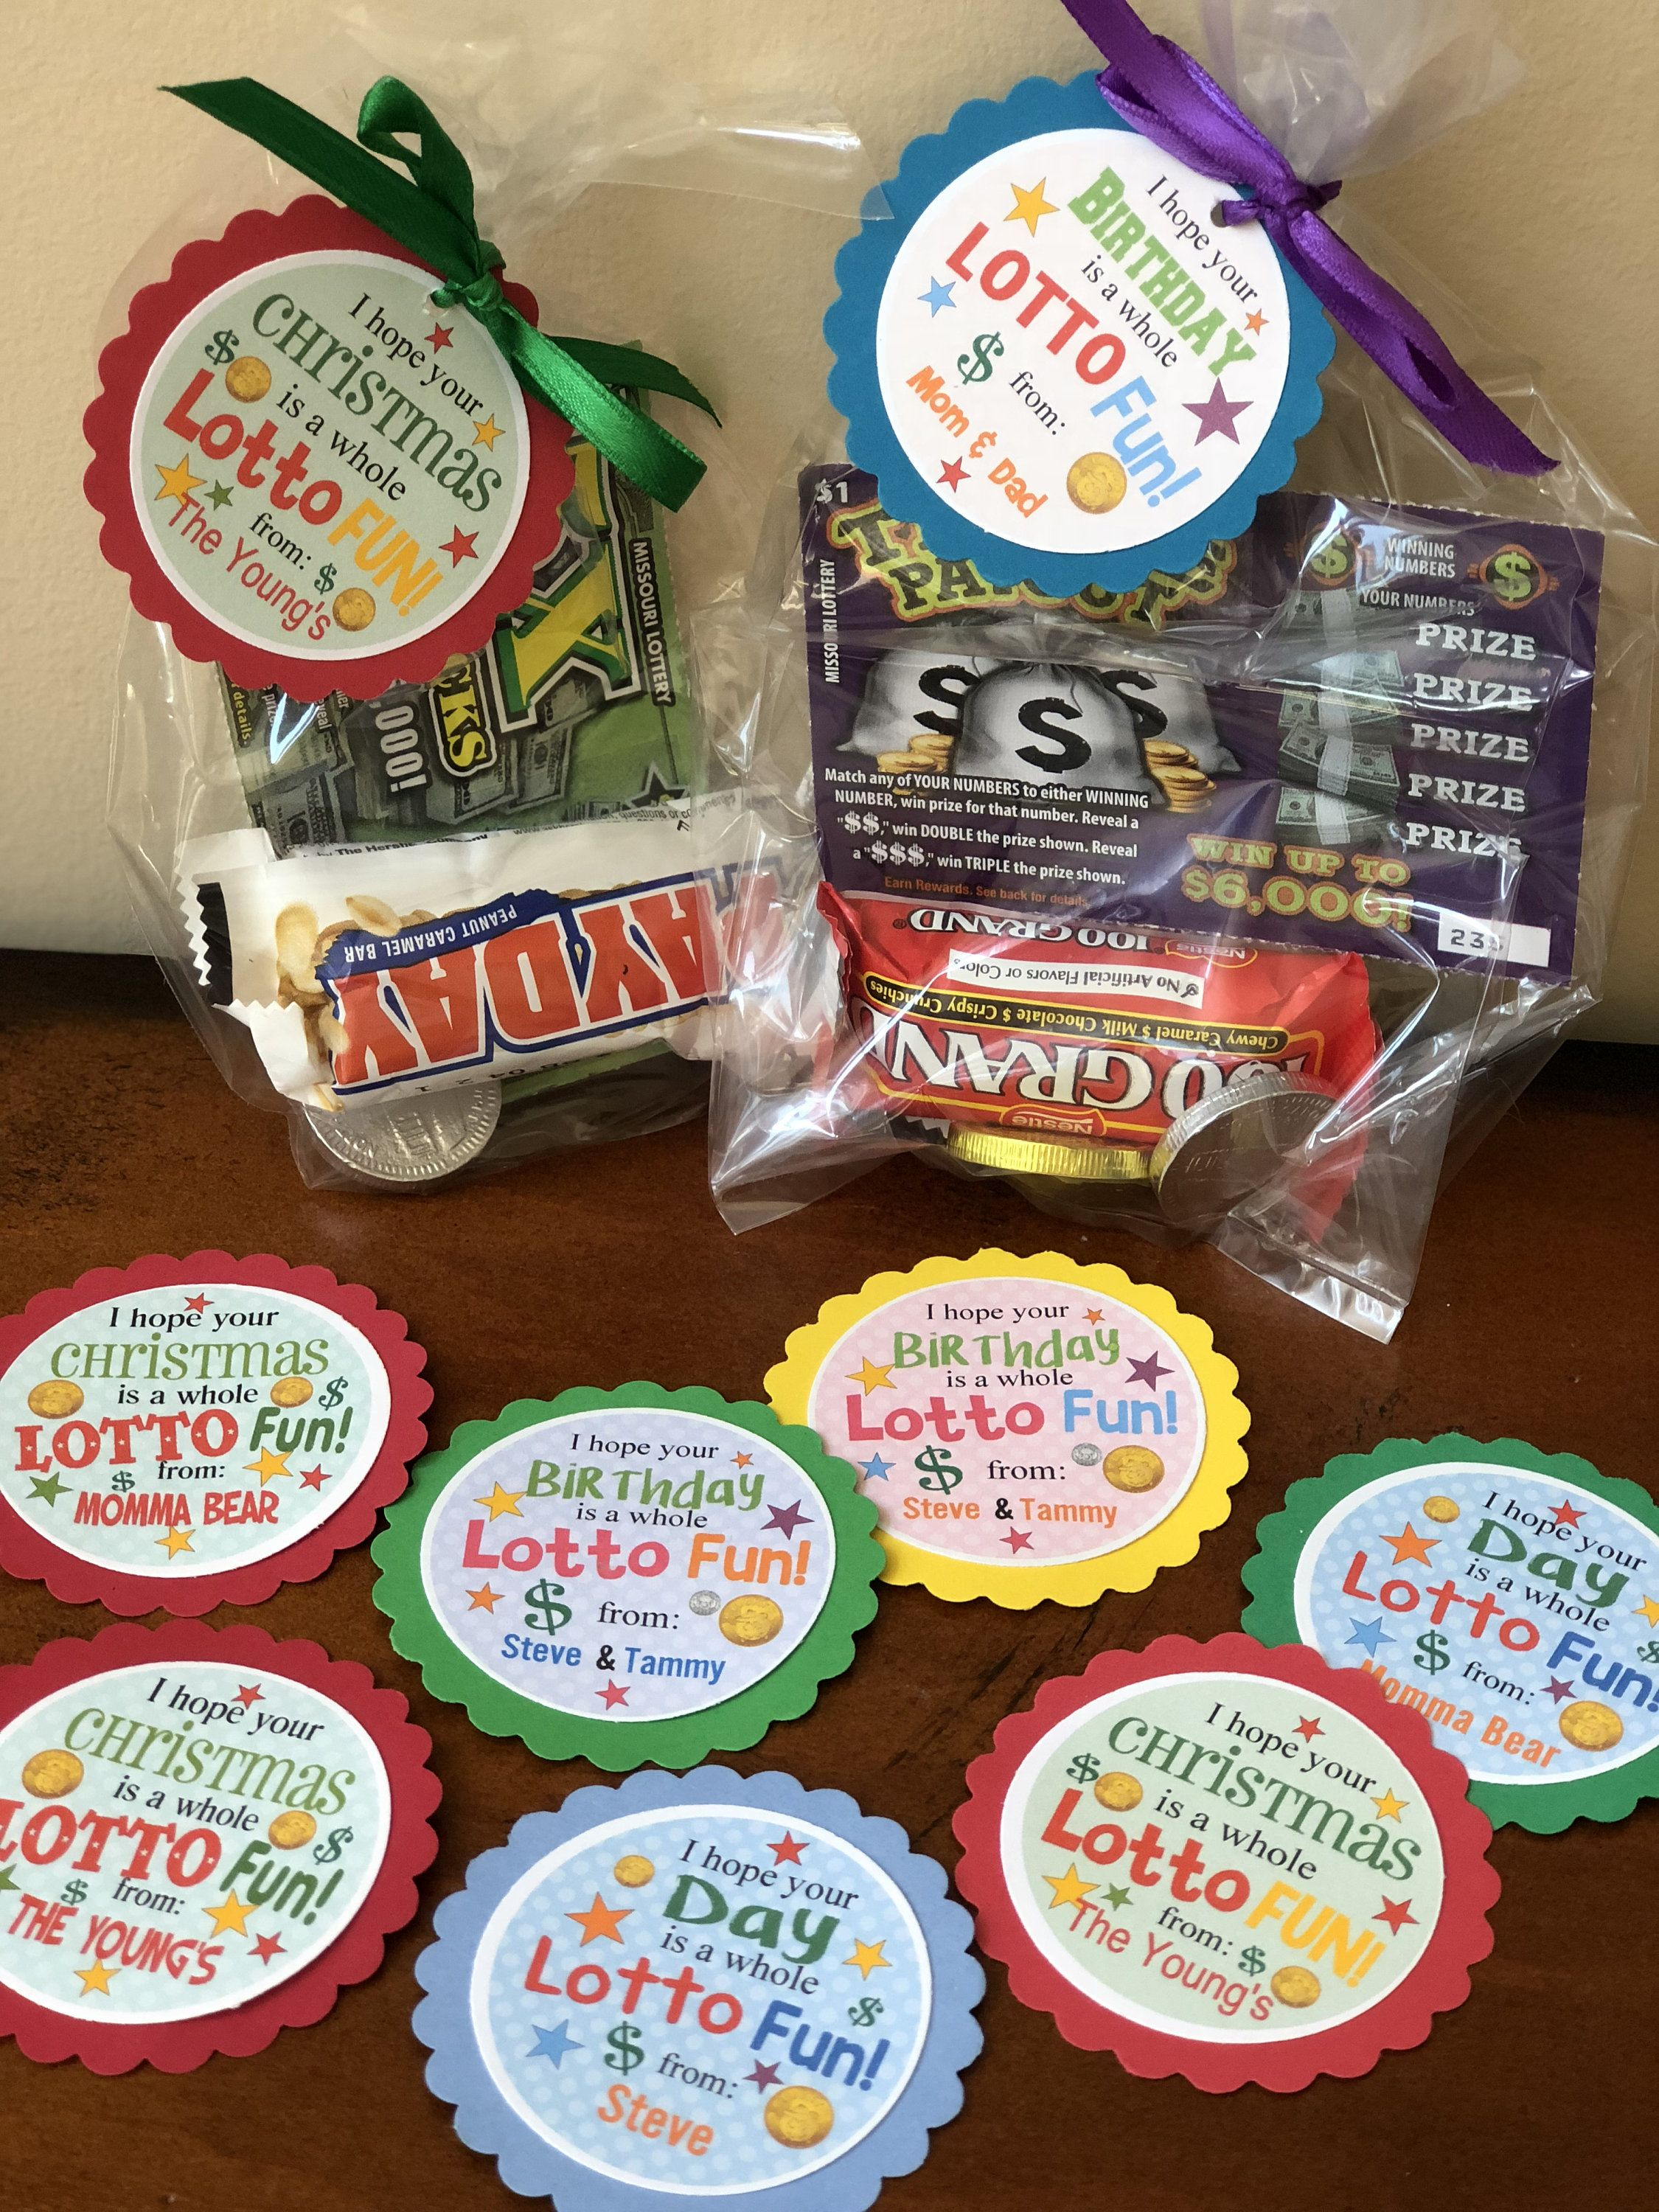 I hope your special day is a whole LOTTO FUN! – set of 12 gift tags to give with LOTTO tickets for unique gift ideas! Xmas -birthday & more